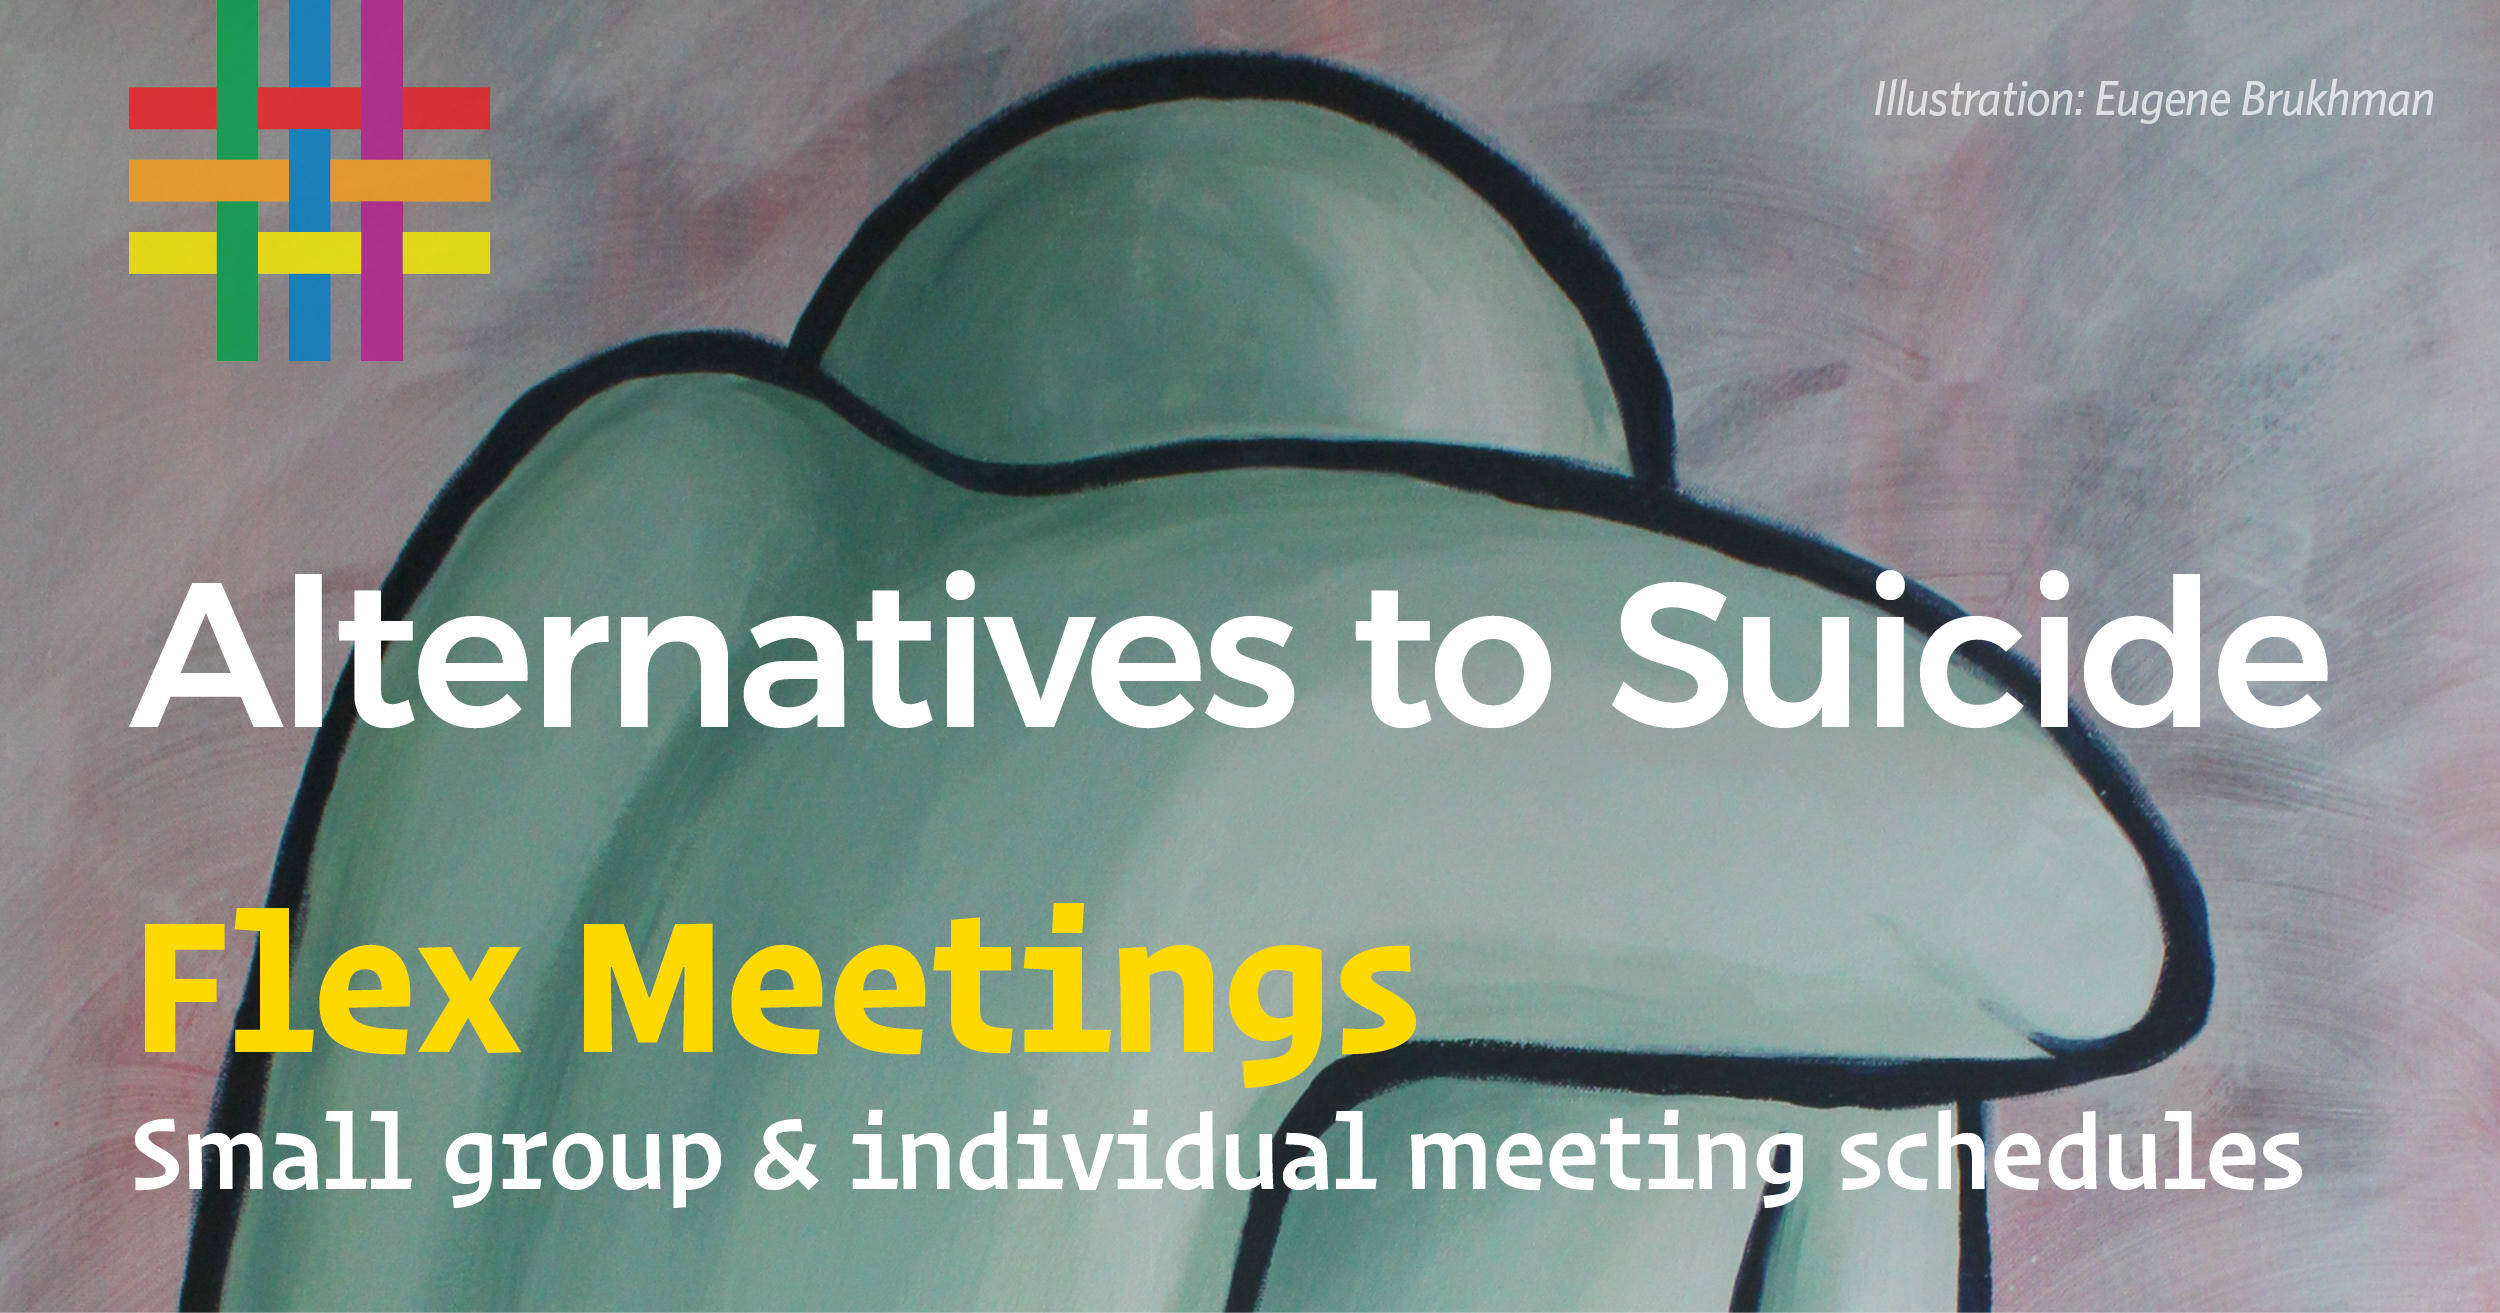 FLEX MEETINGS: Alternatives to Suicide